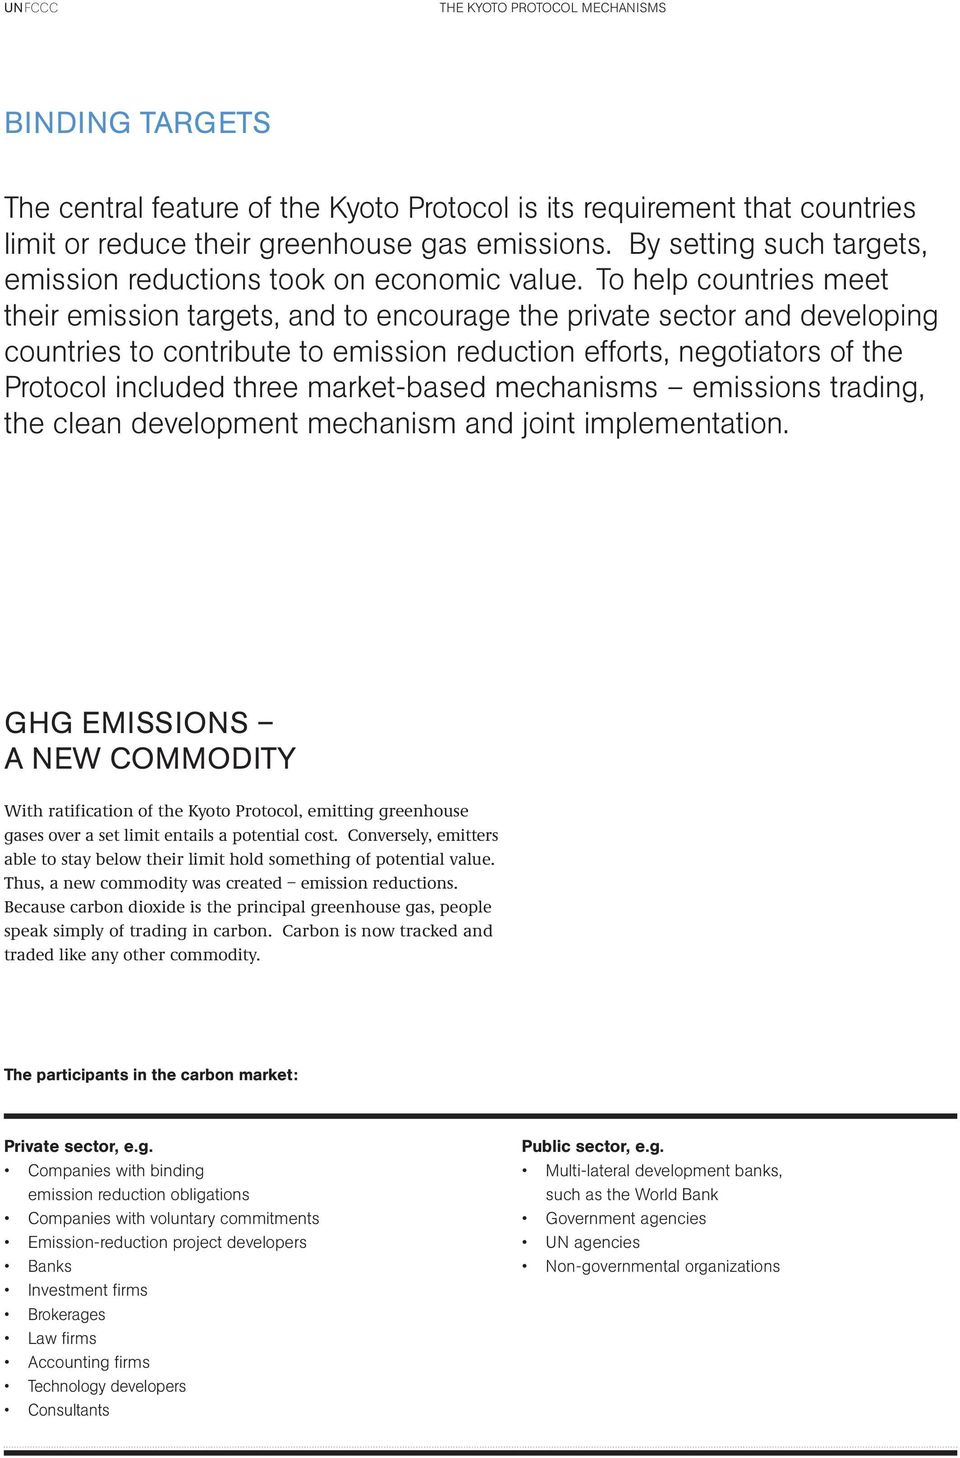 To help countries meet their emission targets, and to encourage the private sector and developing countries to contribute to emission reduction efforts, negotiators of the Protocol included three